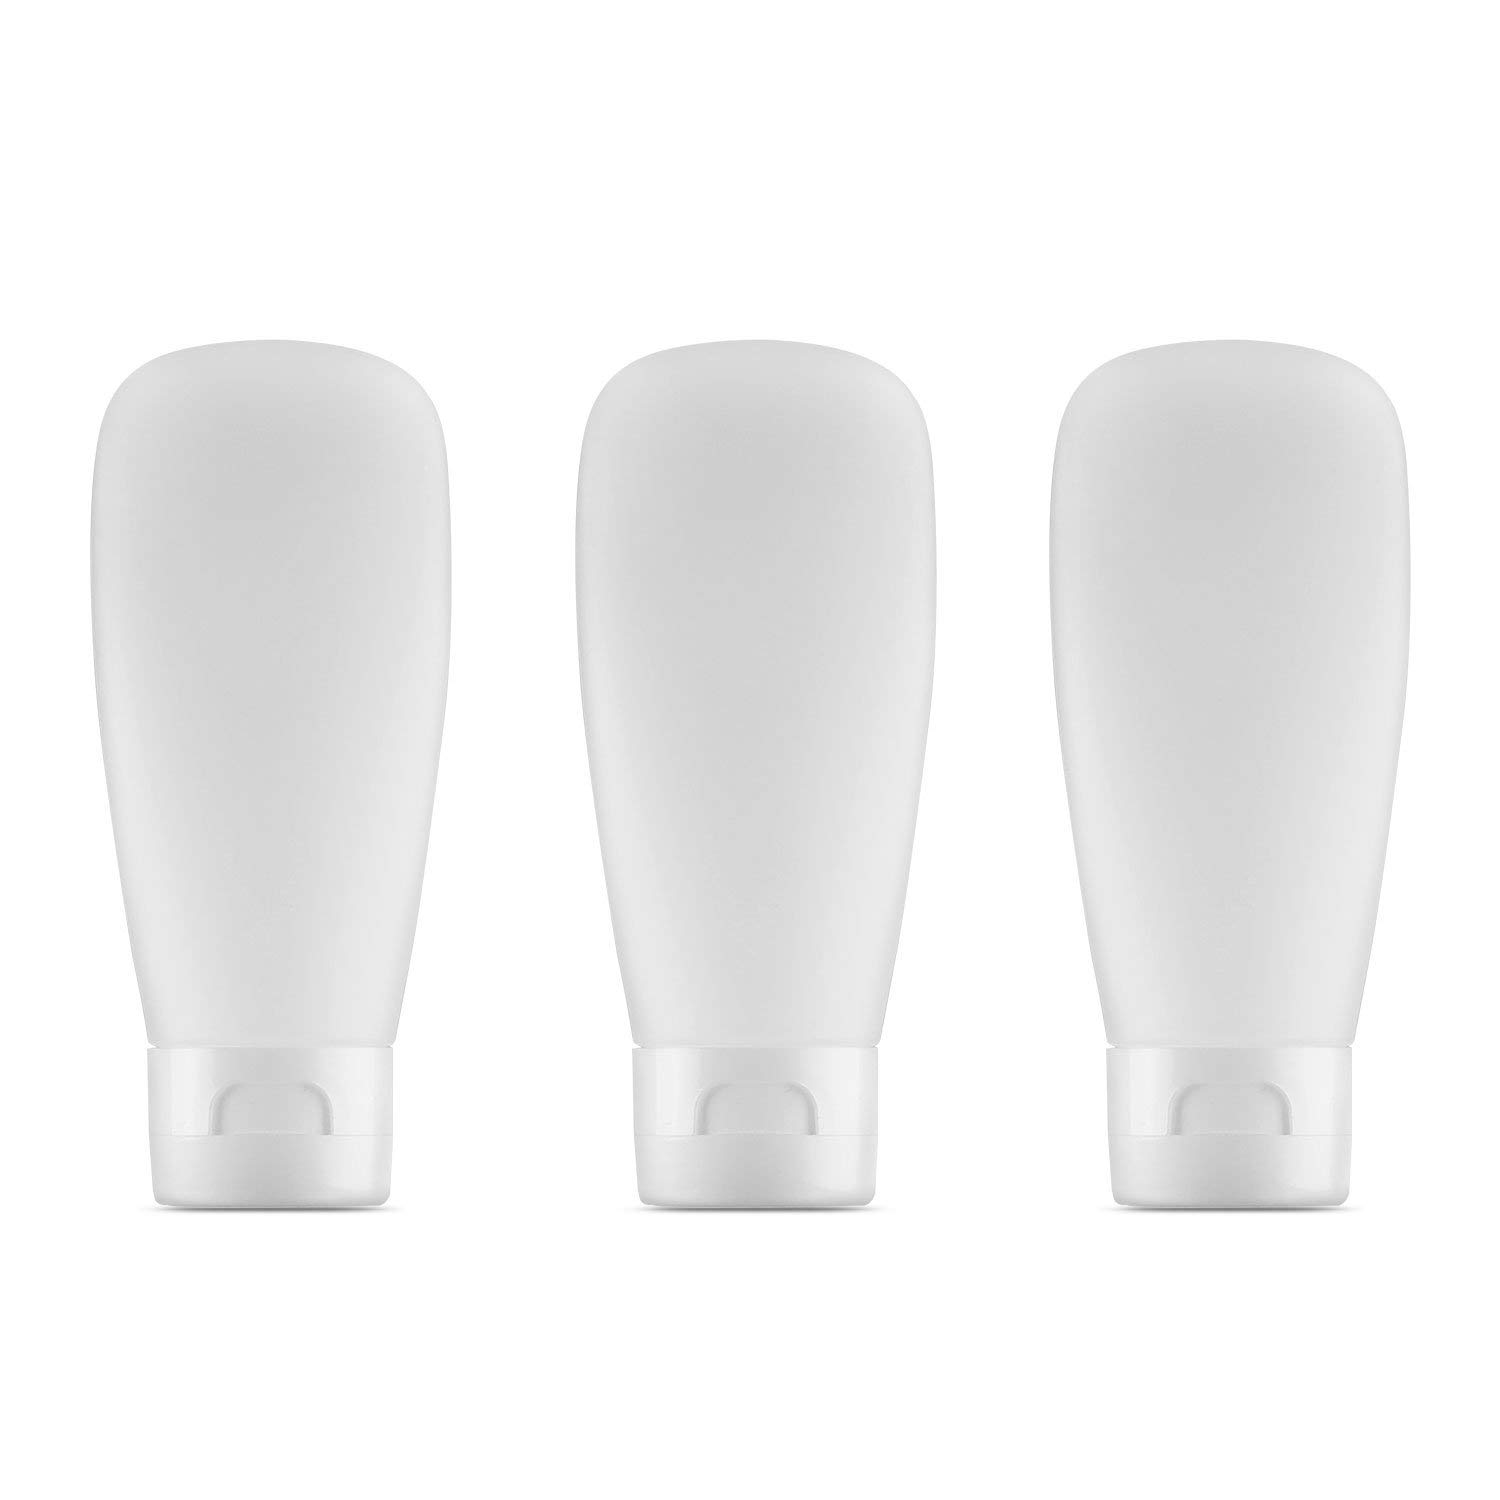 LONGWAY 2 Oz (60ML) Squeezable Soft Travel Tubes with Flip Cap | Refillable Plastic Squeeze Tube Bottles - for Lotion Tube Containers & BPA Free (Pack of 3, Frosted Translucent)